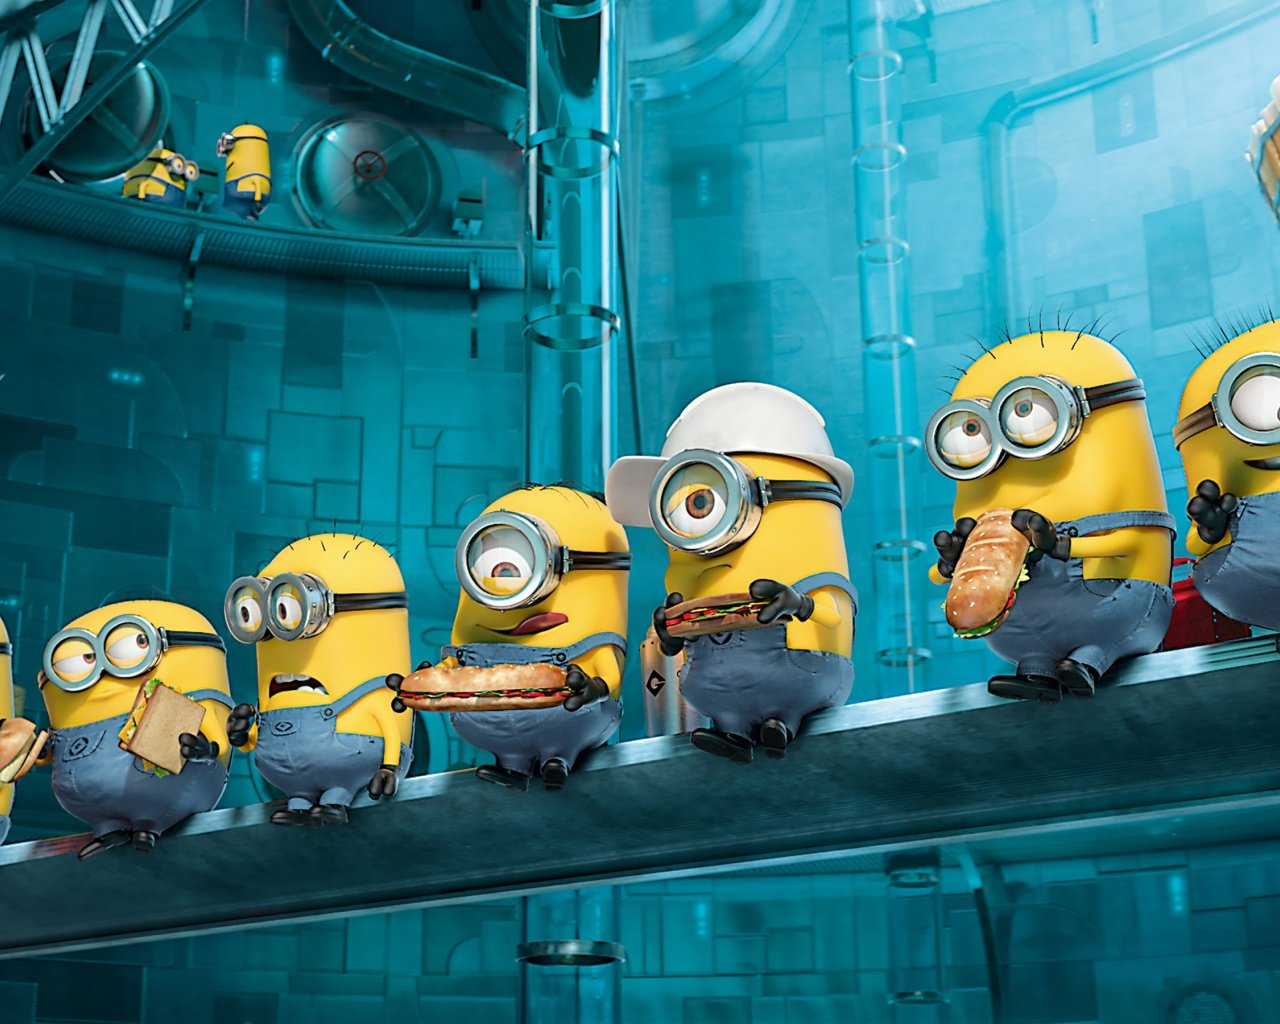 Despicable me minions wallpaper 1280x1024 wallpapersafari - Despicable me minion screensaver ...